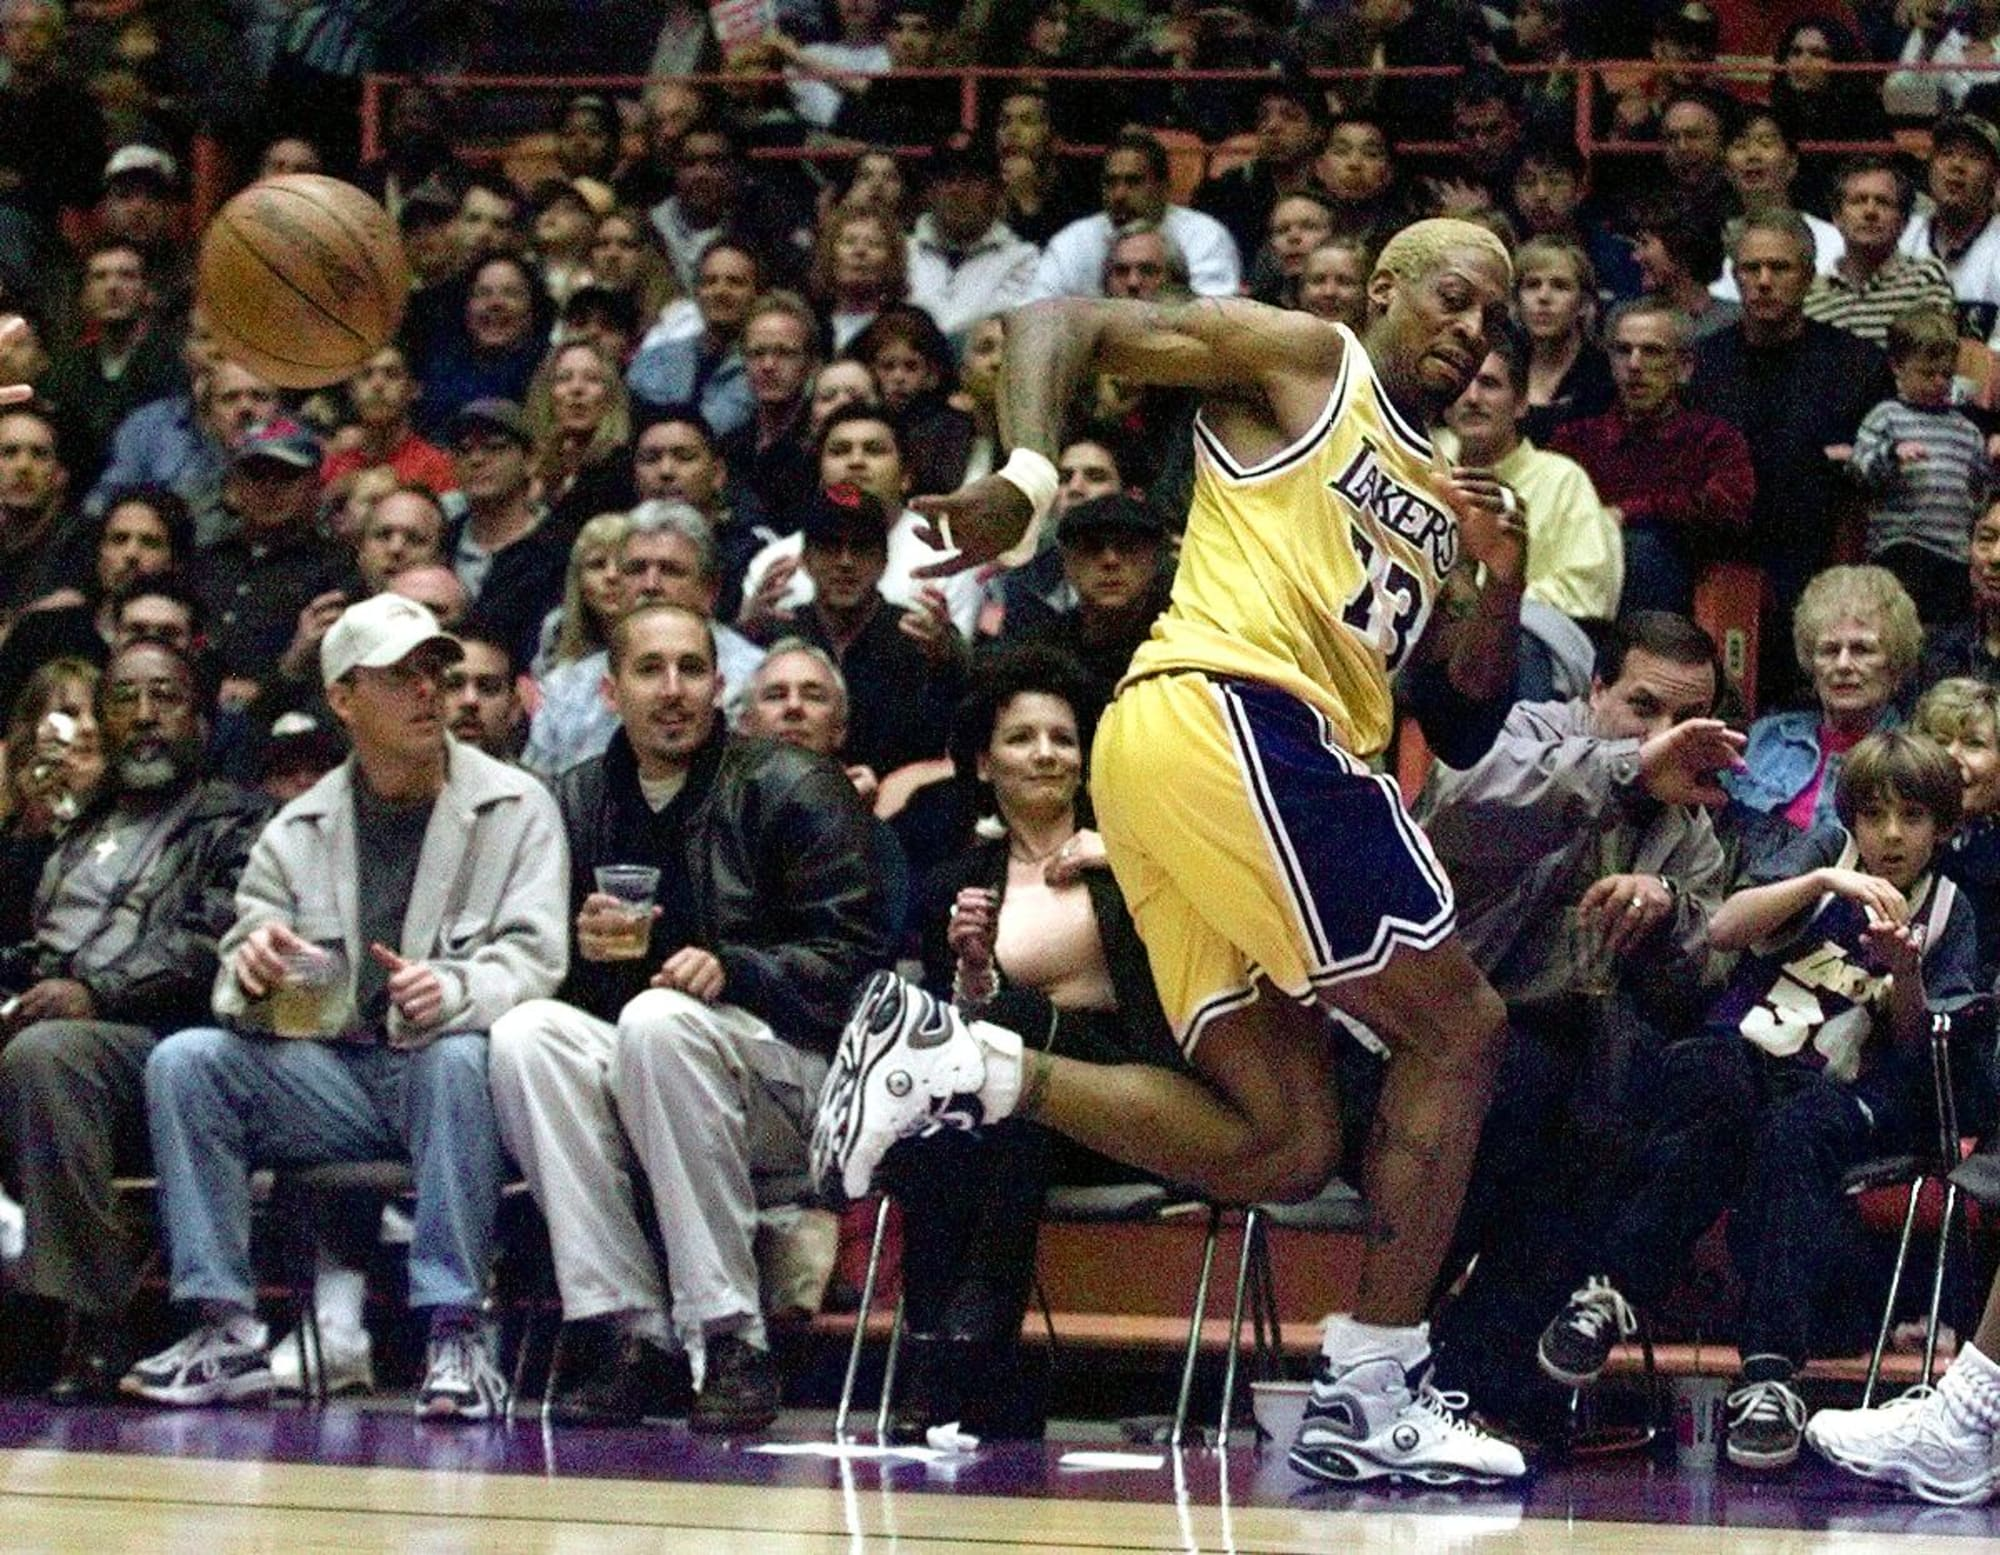 Los Angeles Lakers: The late '90s fantasy lineup that could have been